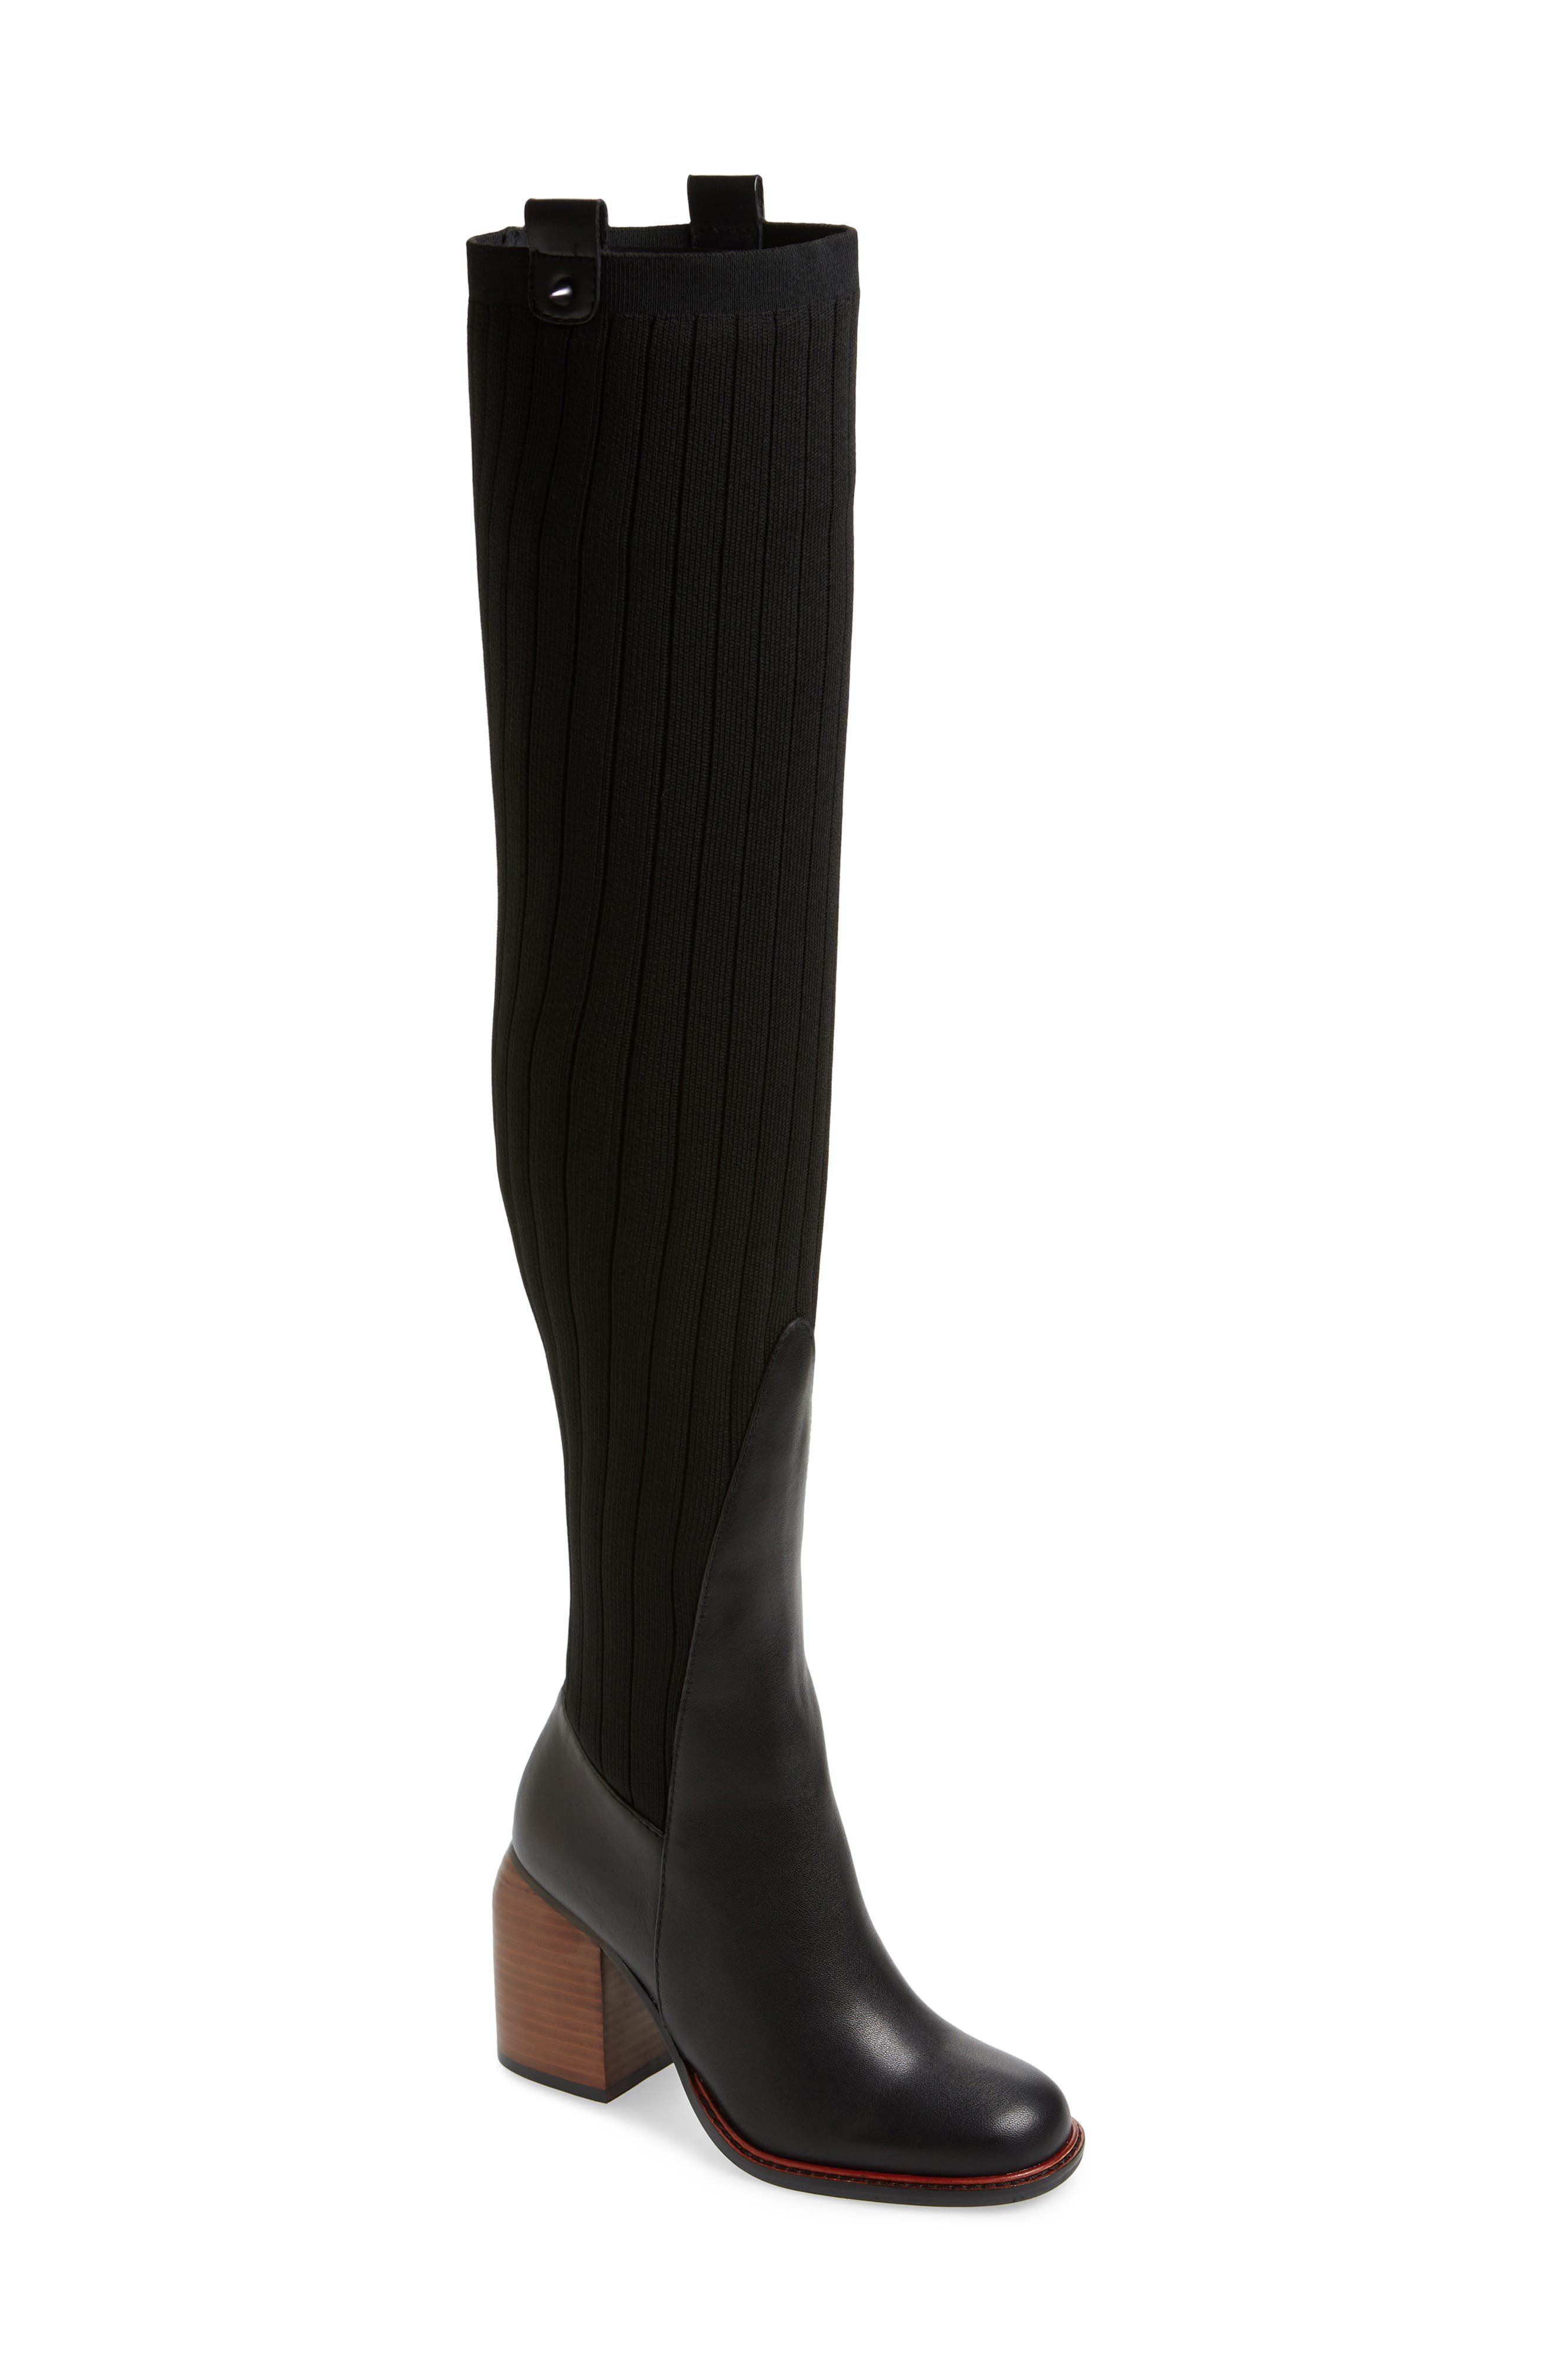 Kelsi Dagger Brooklyn Over The Knee Knit Boot- Black